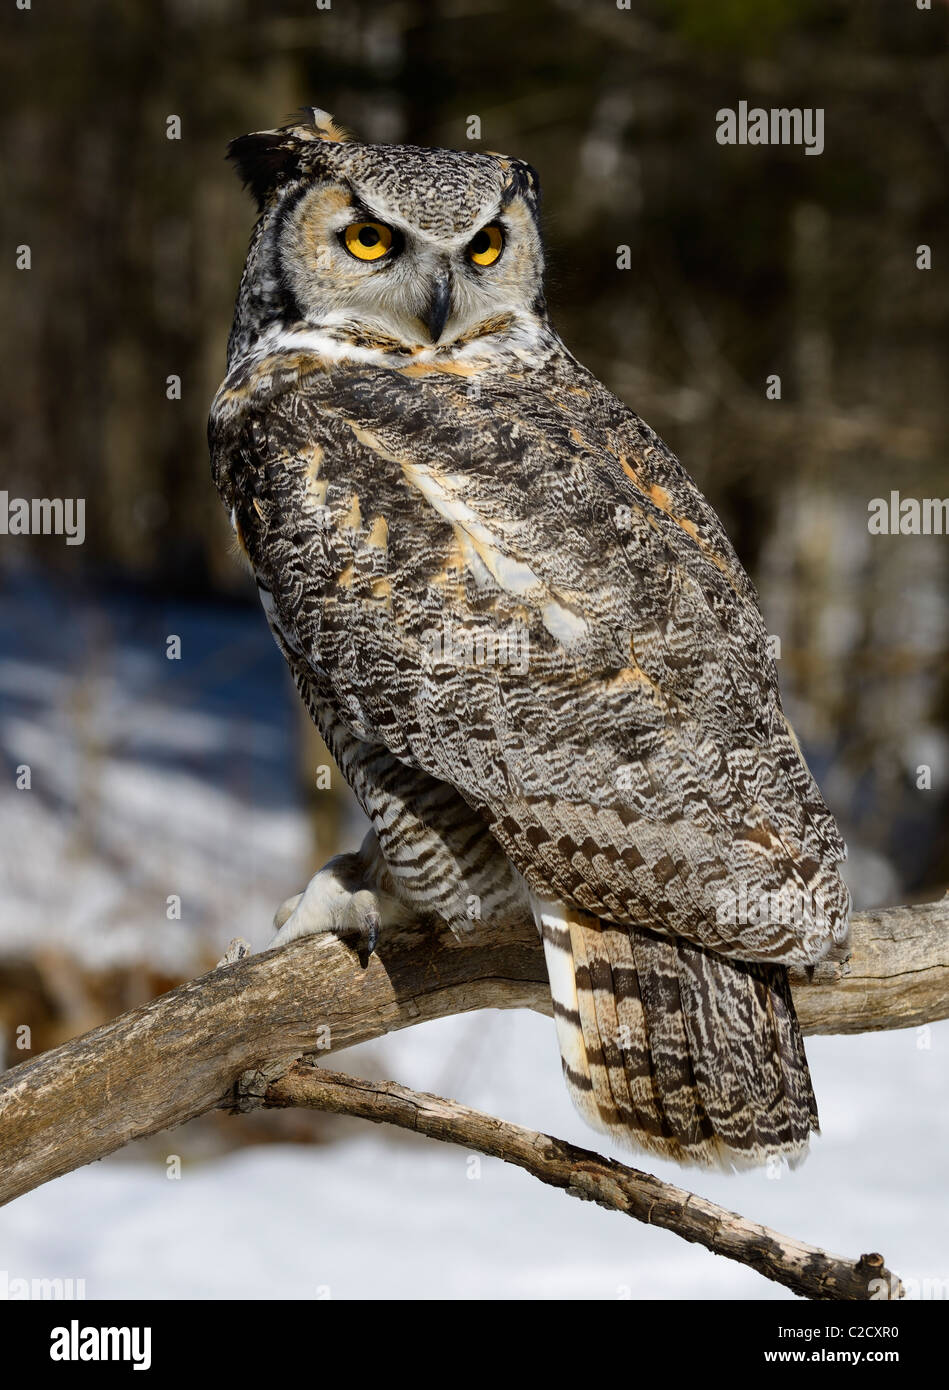 Great horned owl sitting on a dead tree branch in a snowy forest Muskoka North Ontario Stock Photo